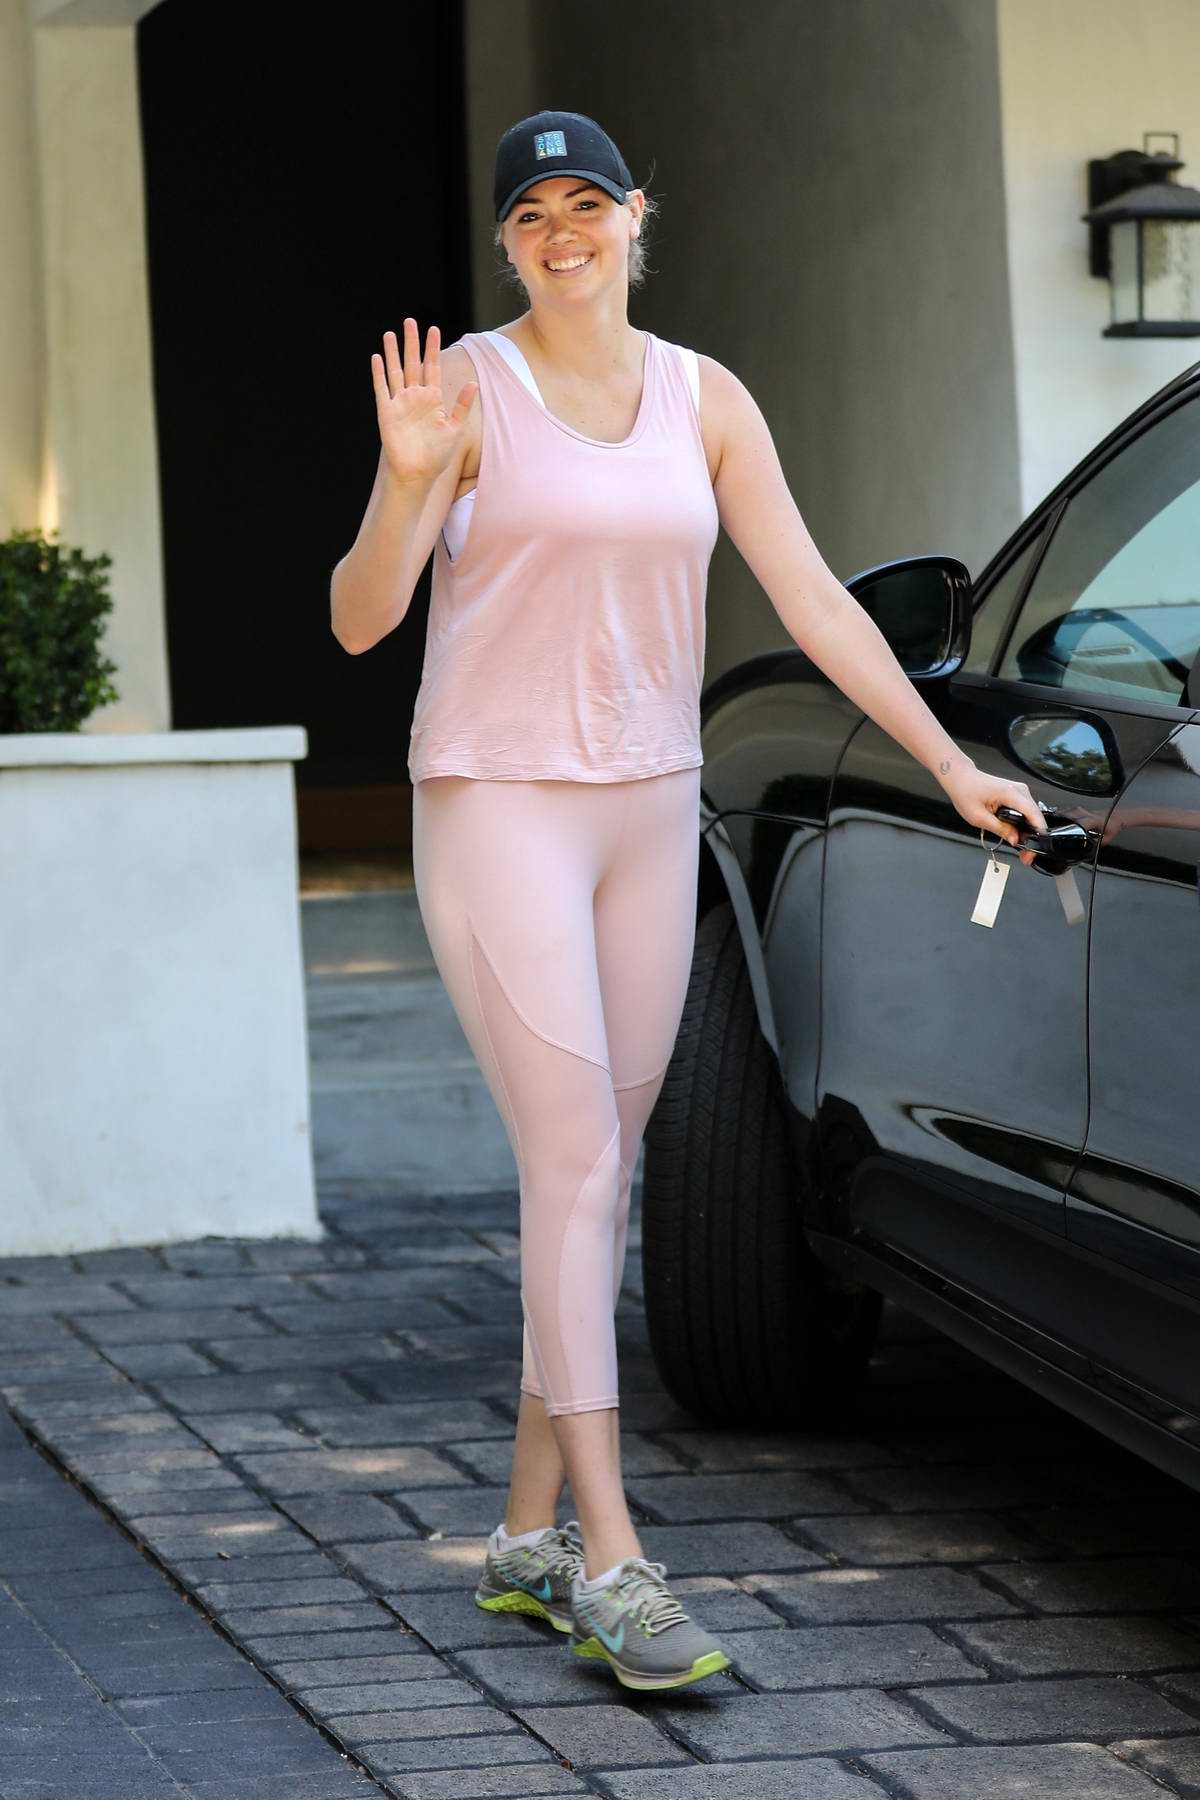 Kate Upton is all smiles while leaving a workout session donning a pink tank and matching leggings in Santa Monica, California